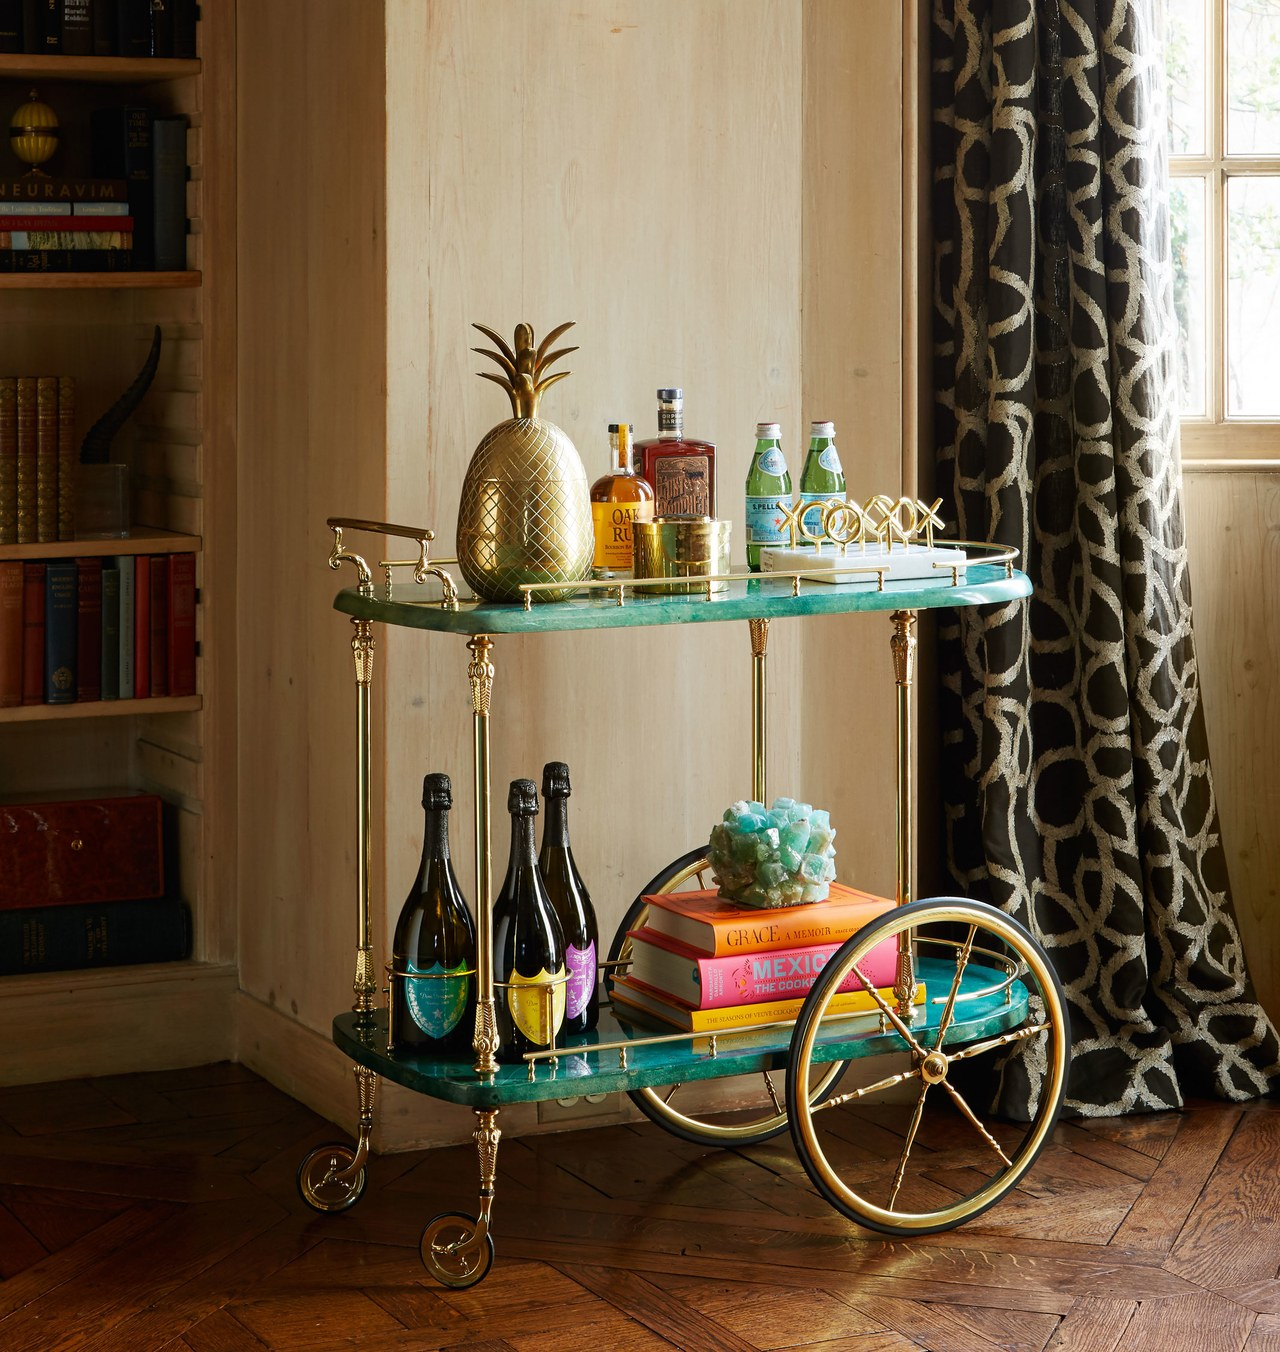 Bar cart with colorful decor